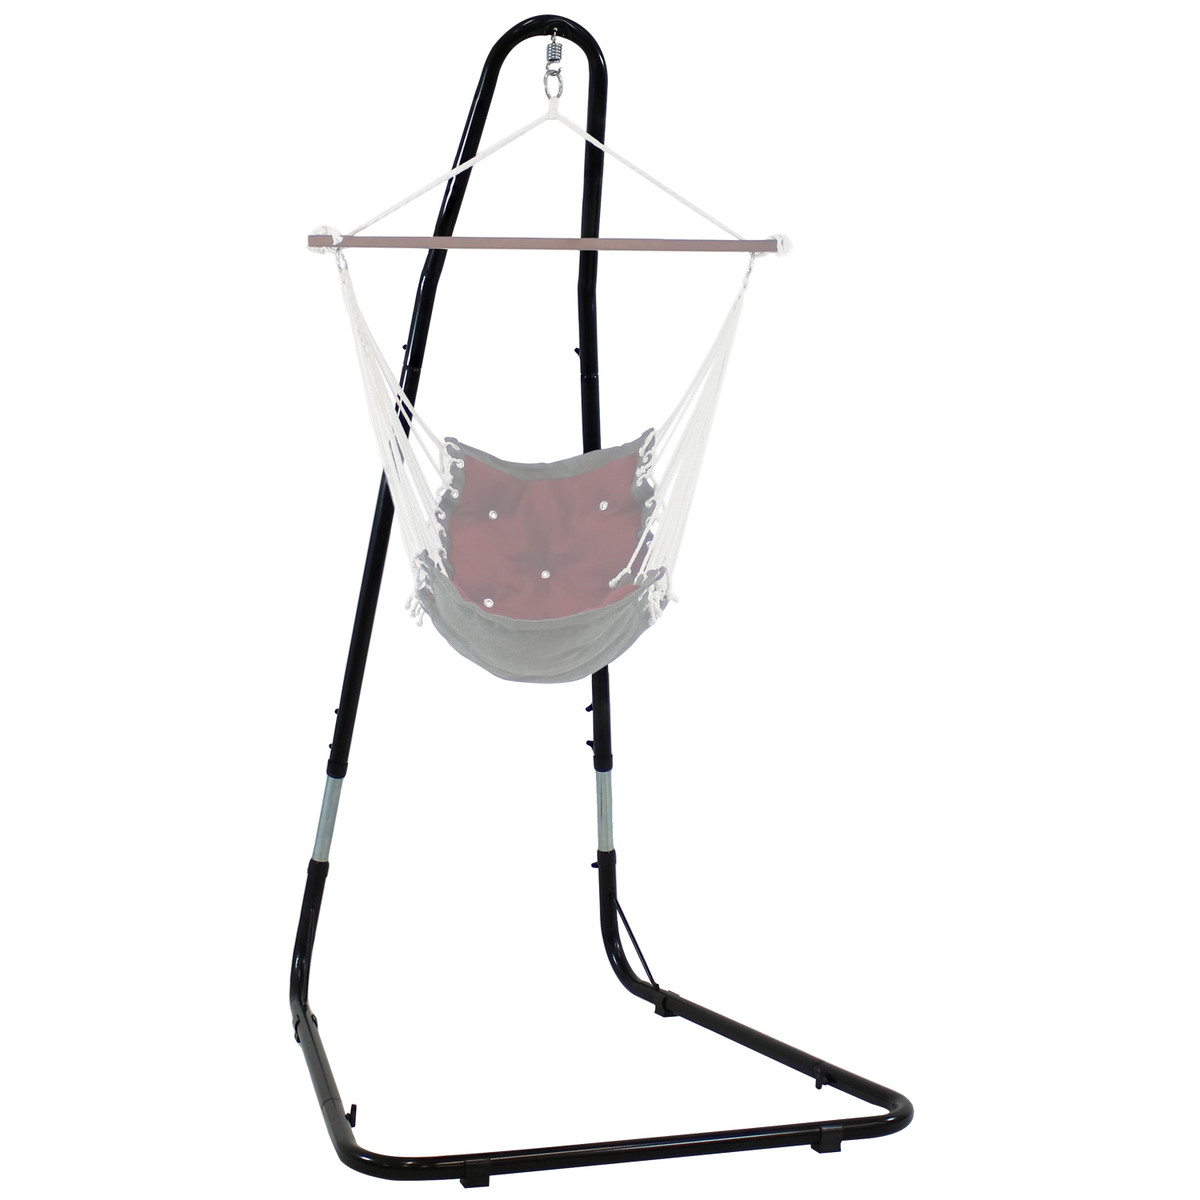 Adjustable Hammock Chair Stand Steel Frame For Hammock Chairs Swings US STOCK